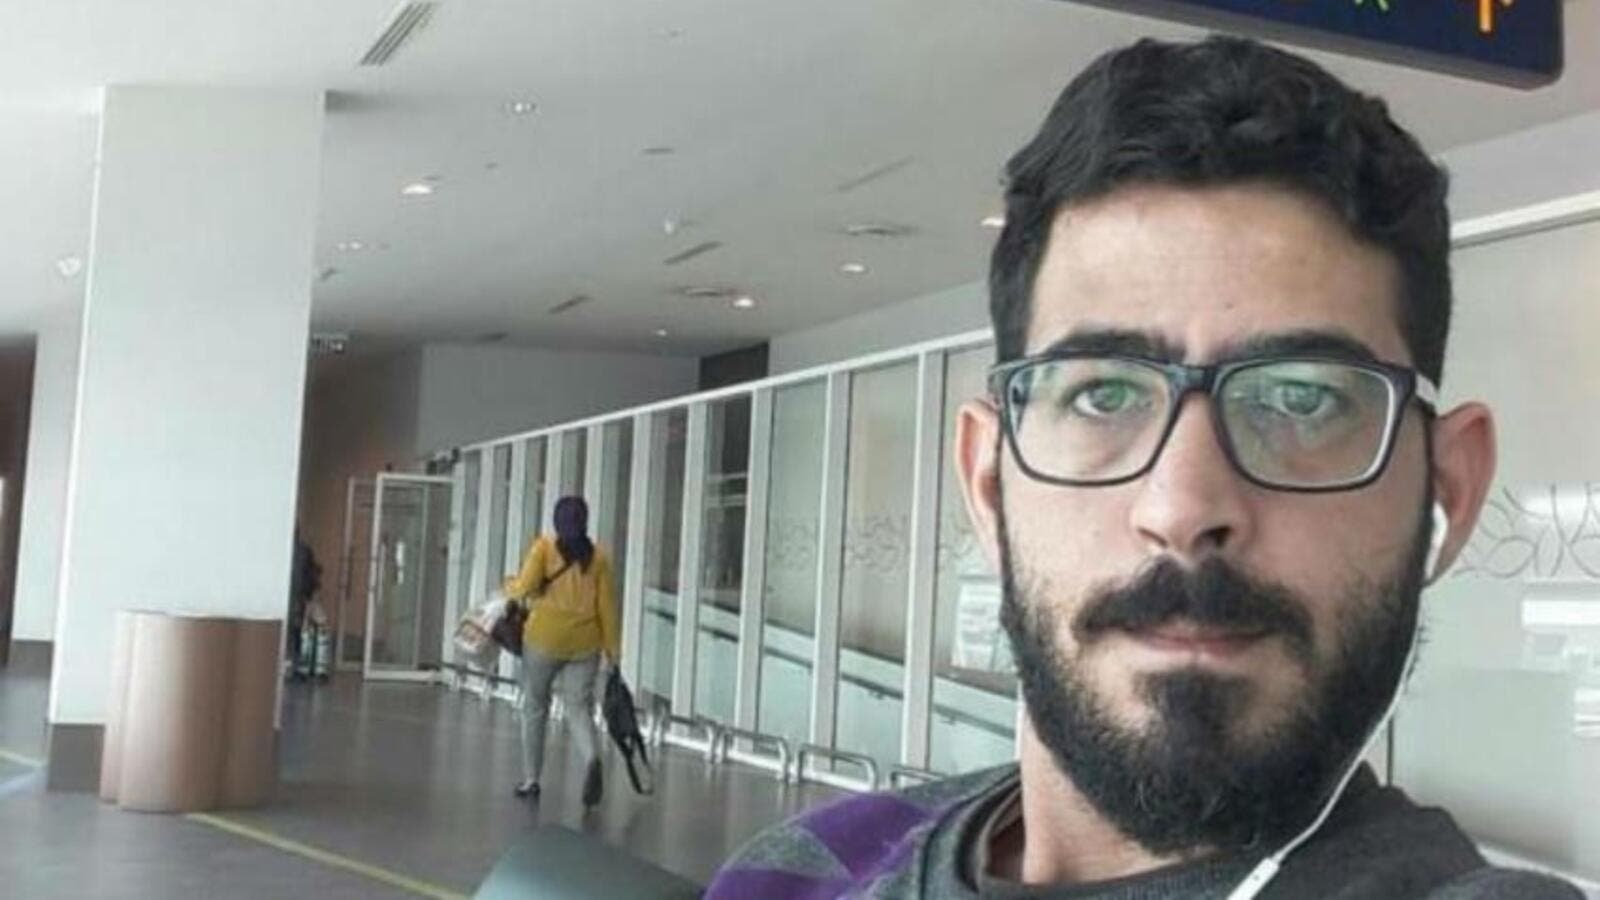 Kontar is unable to return to Syria as he is wanted by authorities. [Twitter]